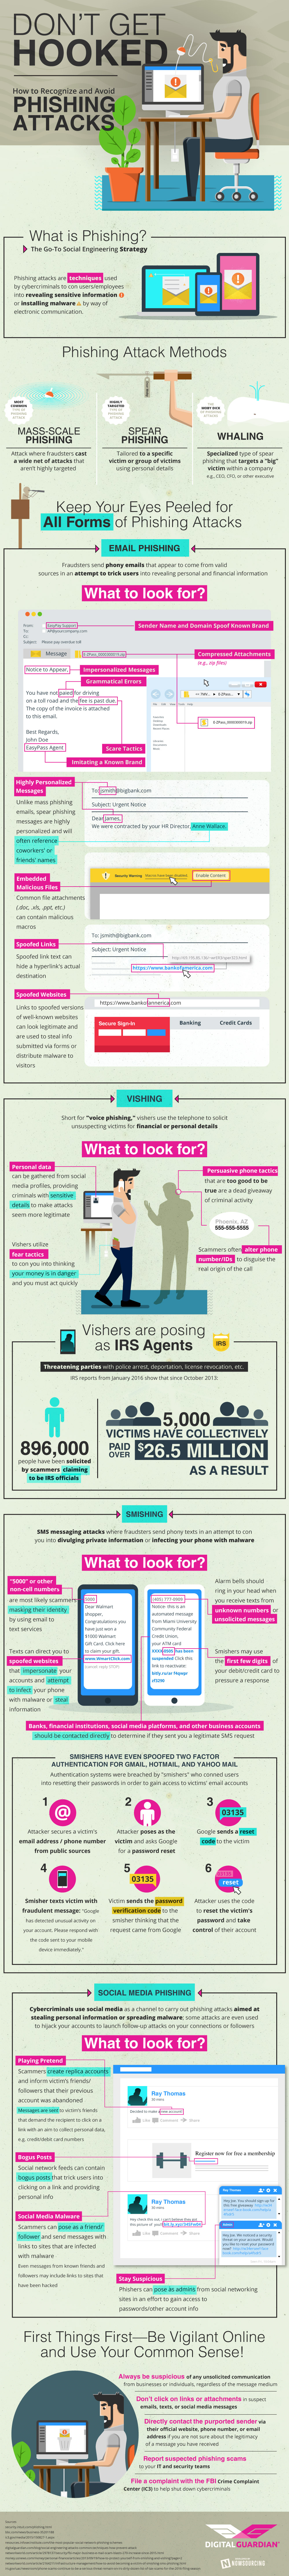 phishing-attacks-infographic-final-999